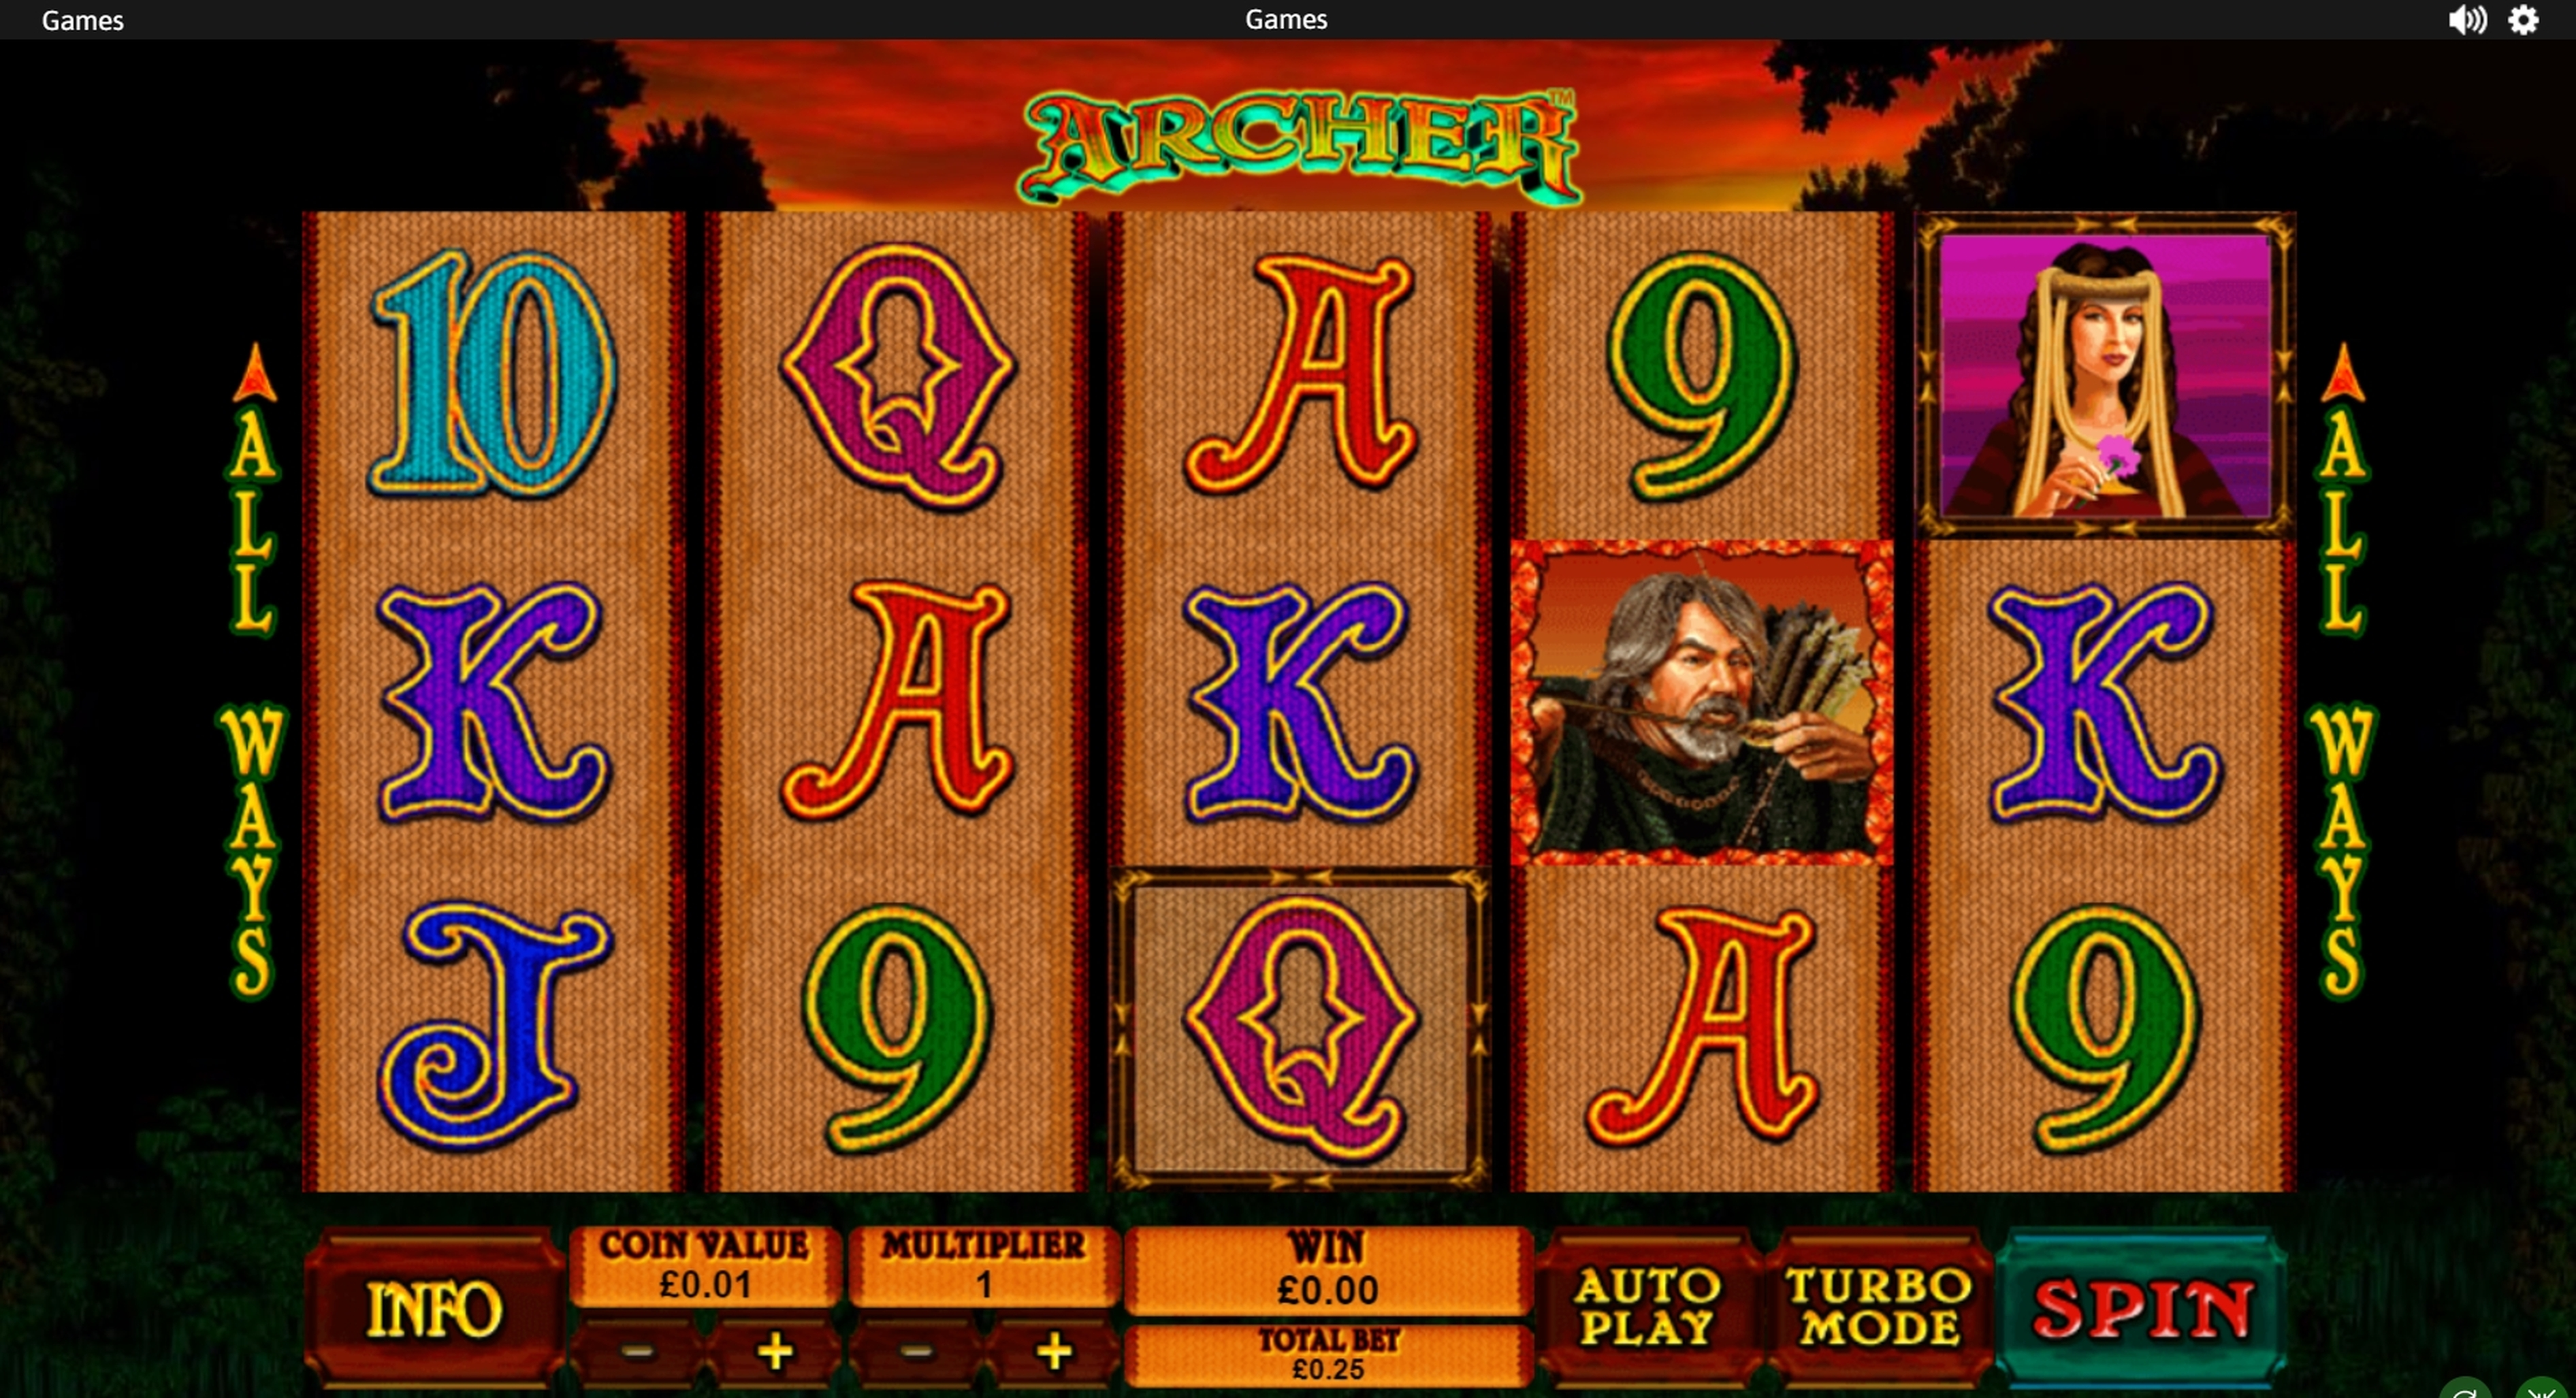 Reels in Archer Slot Game by Playtech